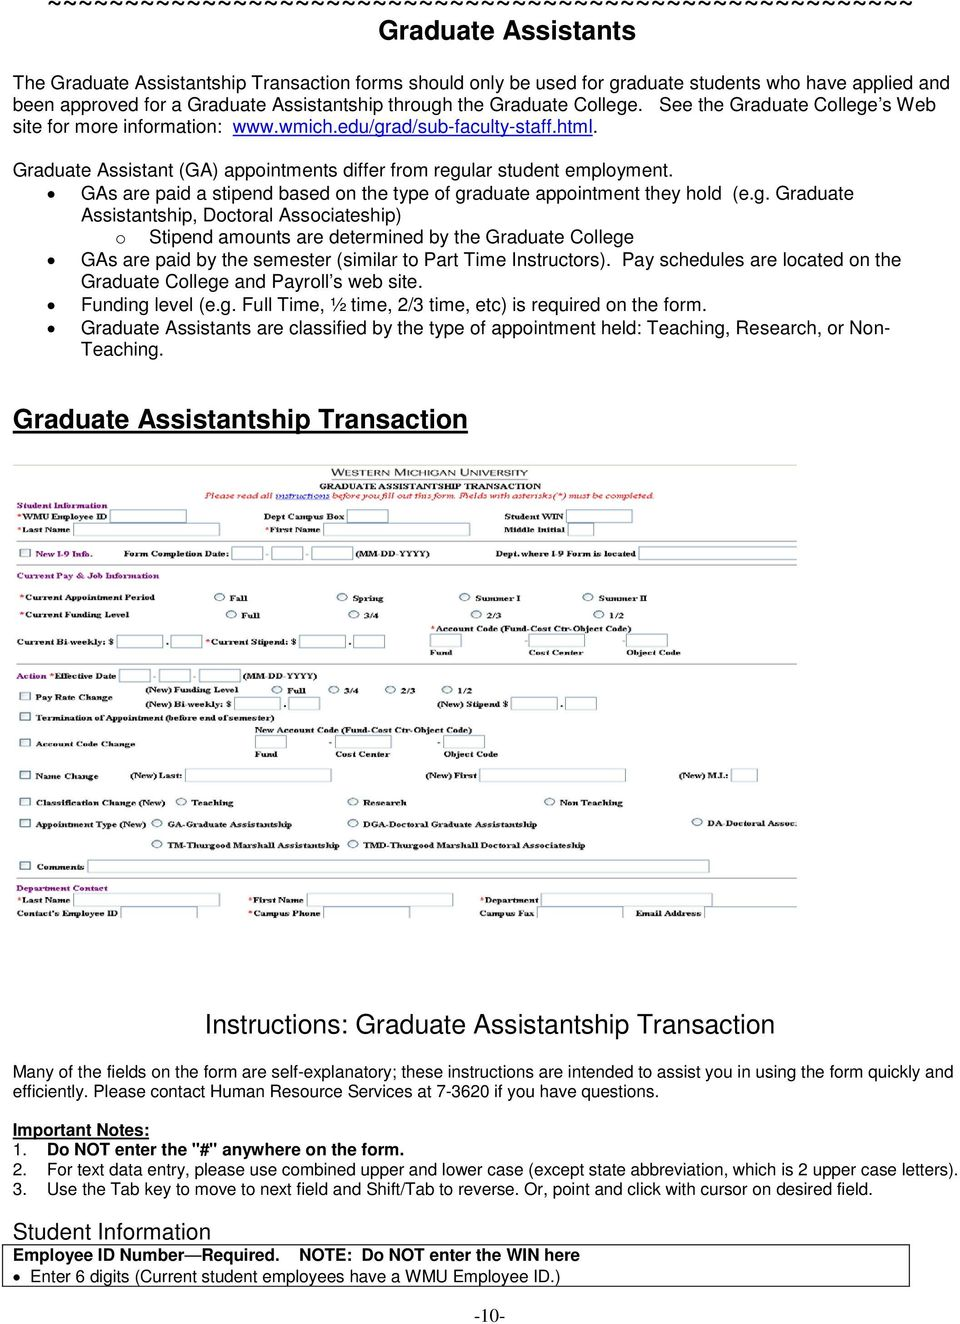 Graduate Assistant (GA) appointments differ from regu